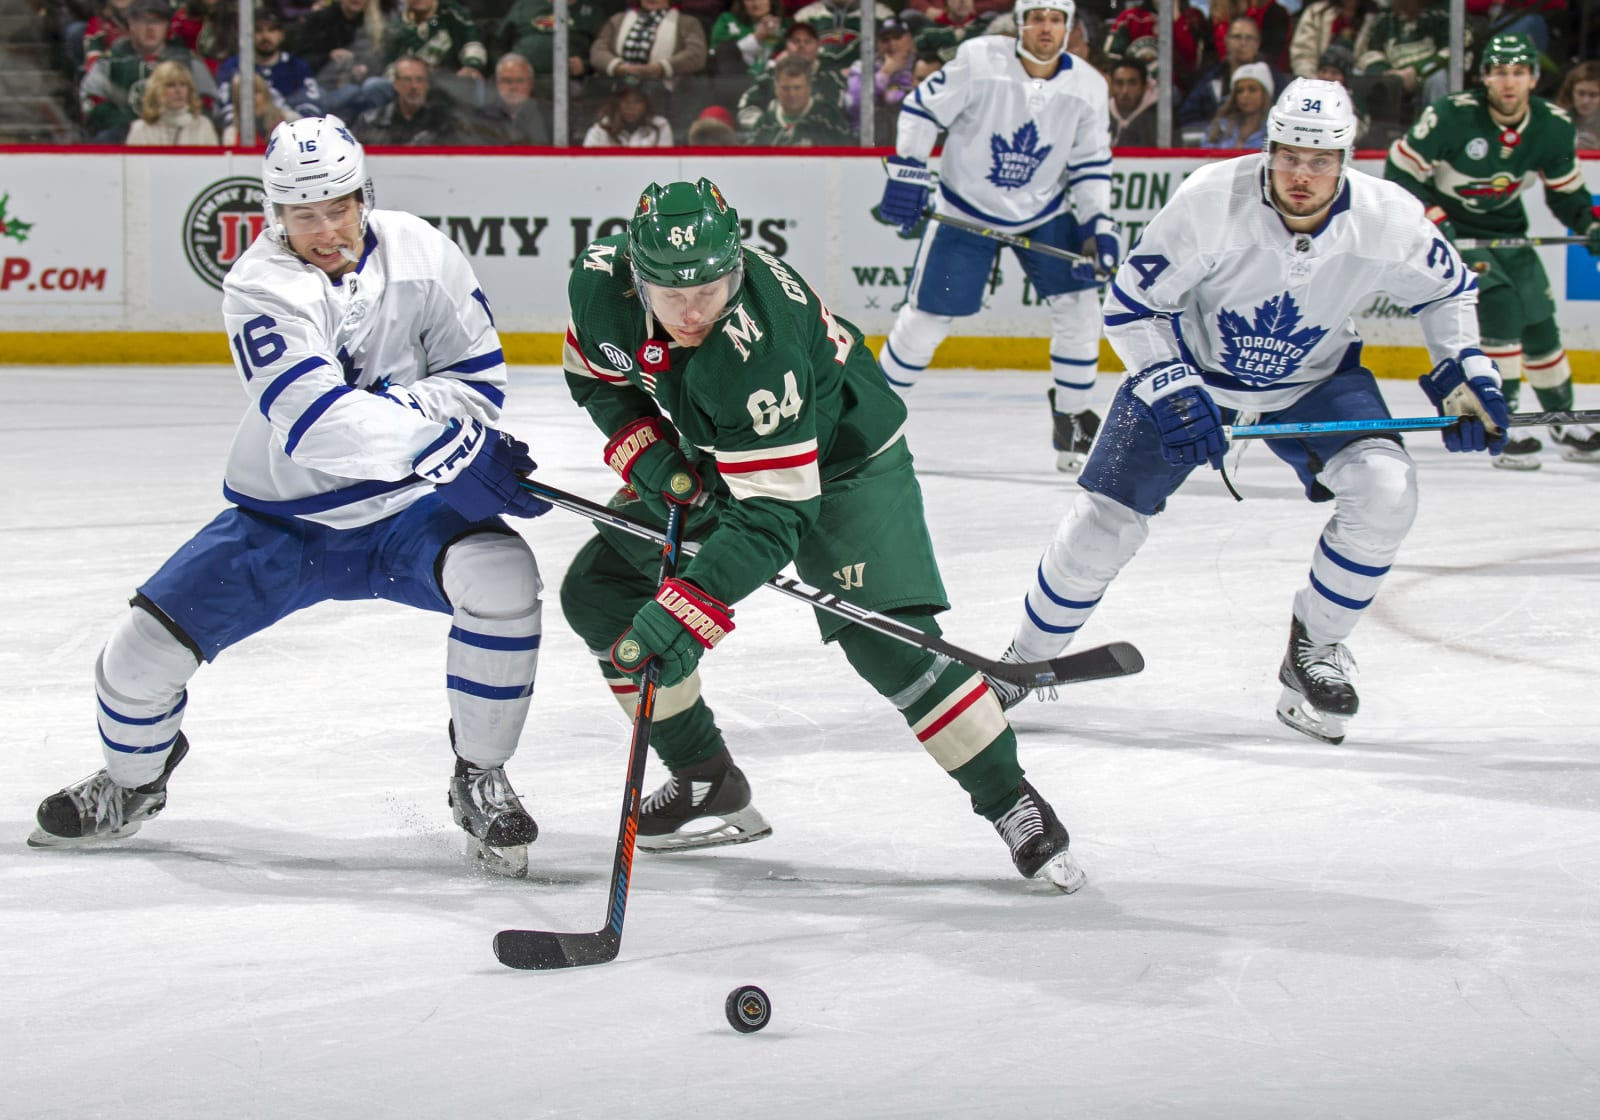 ST. PAUL, MN - DECEMBER 01: Mitch Marner #16 of the Toronto Maple Leafs and Mikael Granlund #64 of the Minnesota Wild battle for the puck during a game at Xcel Energy Center on December 1, 2018 in St. Paul, Minnesota.(Photo by Bruce Kluckhohn/NHLI via Getty Images)